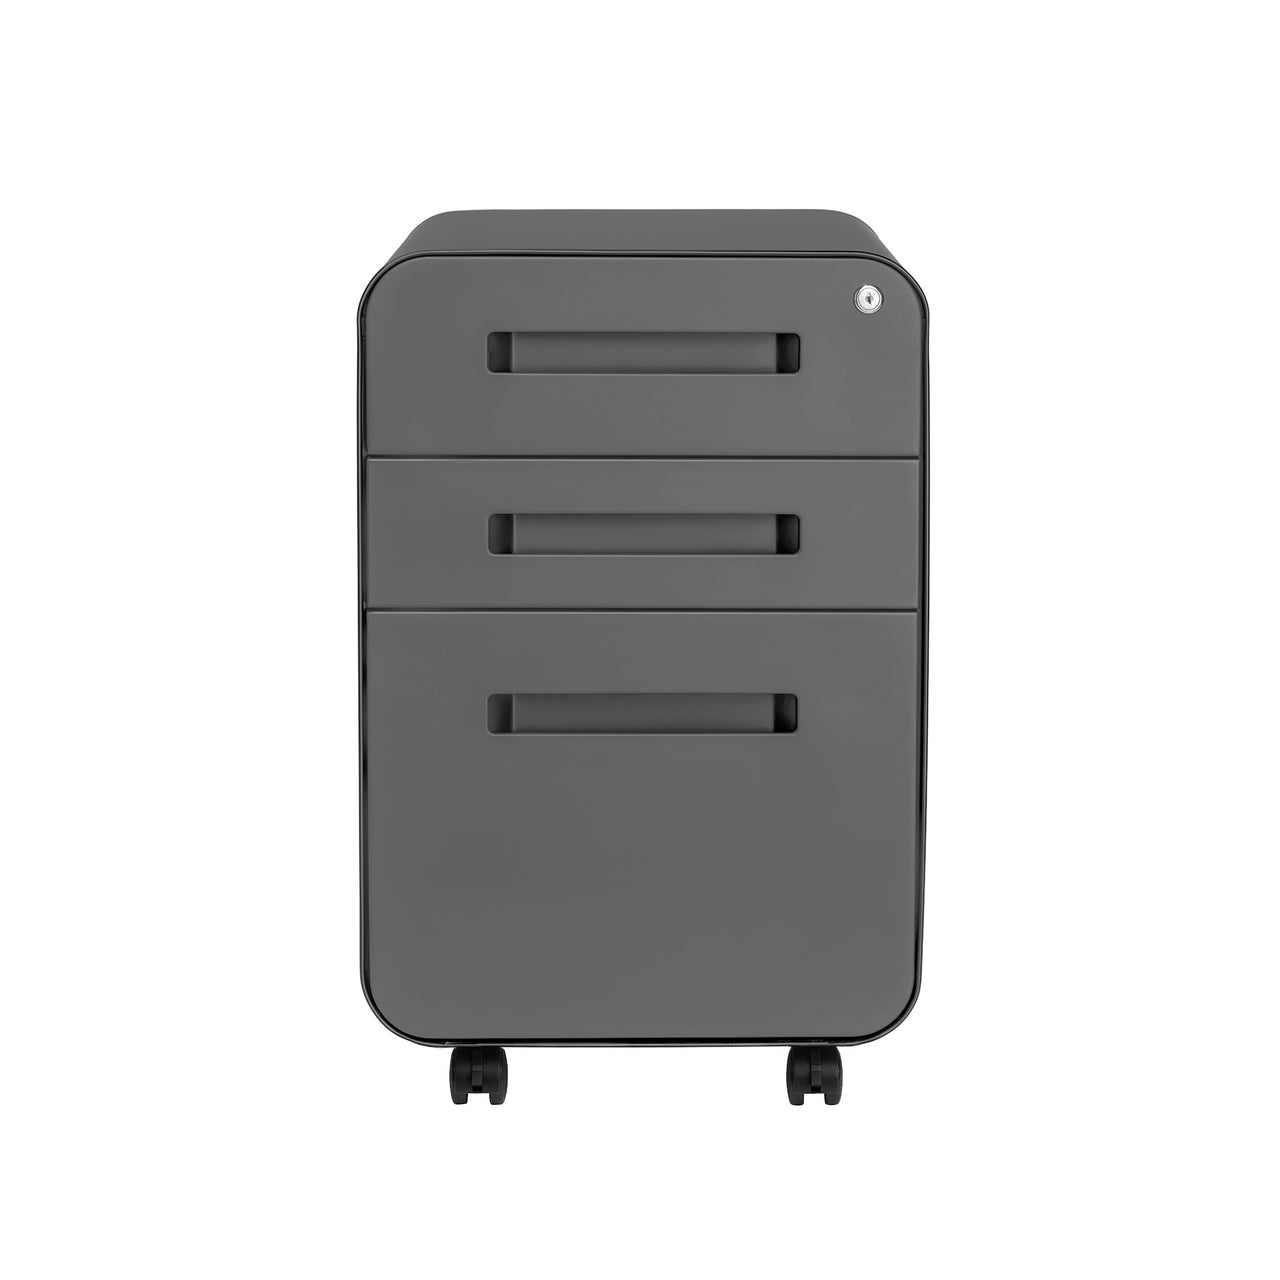 Stockpile Curve File Cabinet (Dark Grey)